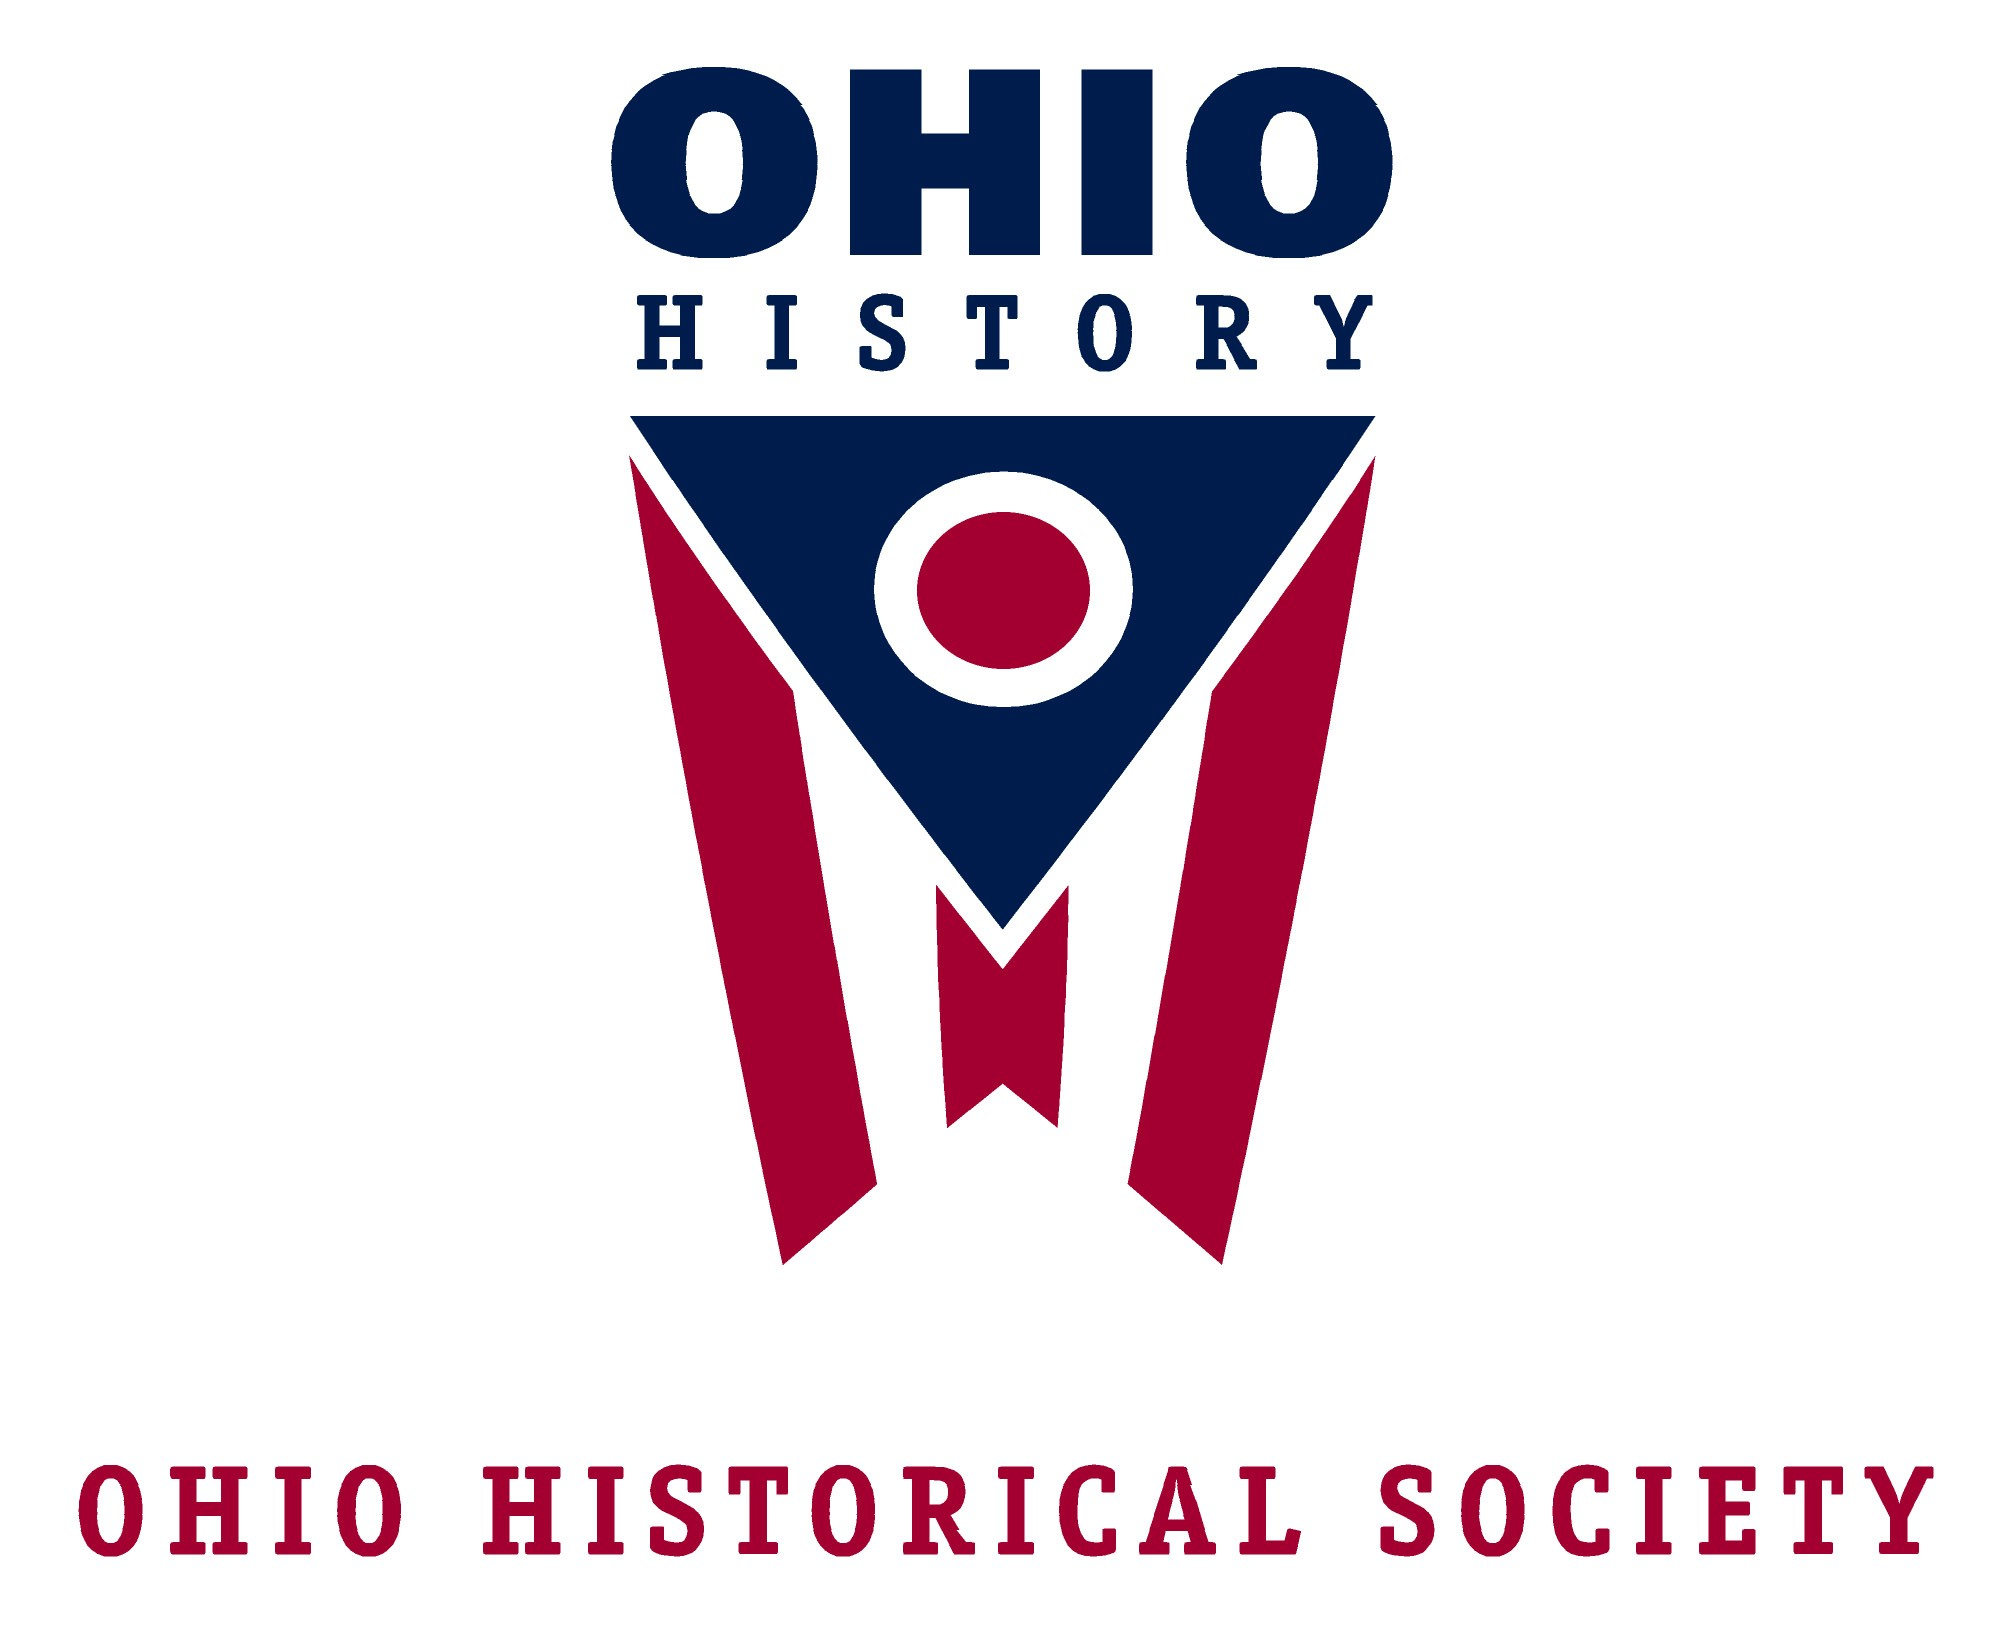 The Ohio Historical Society